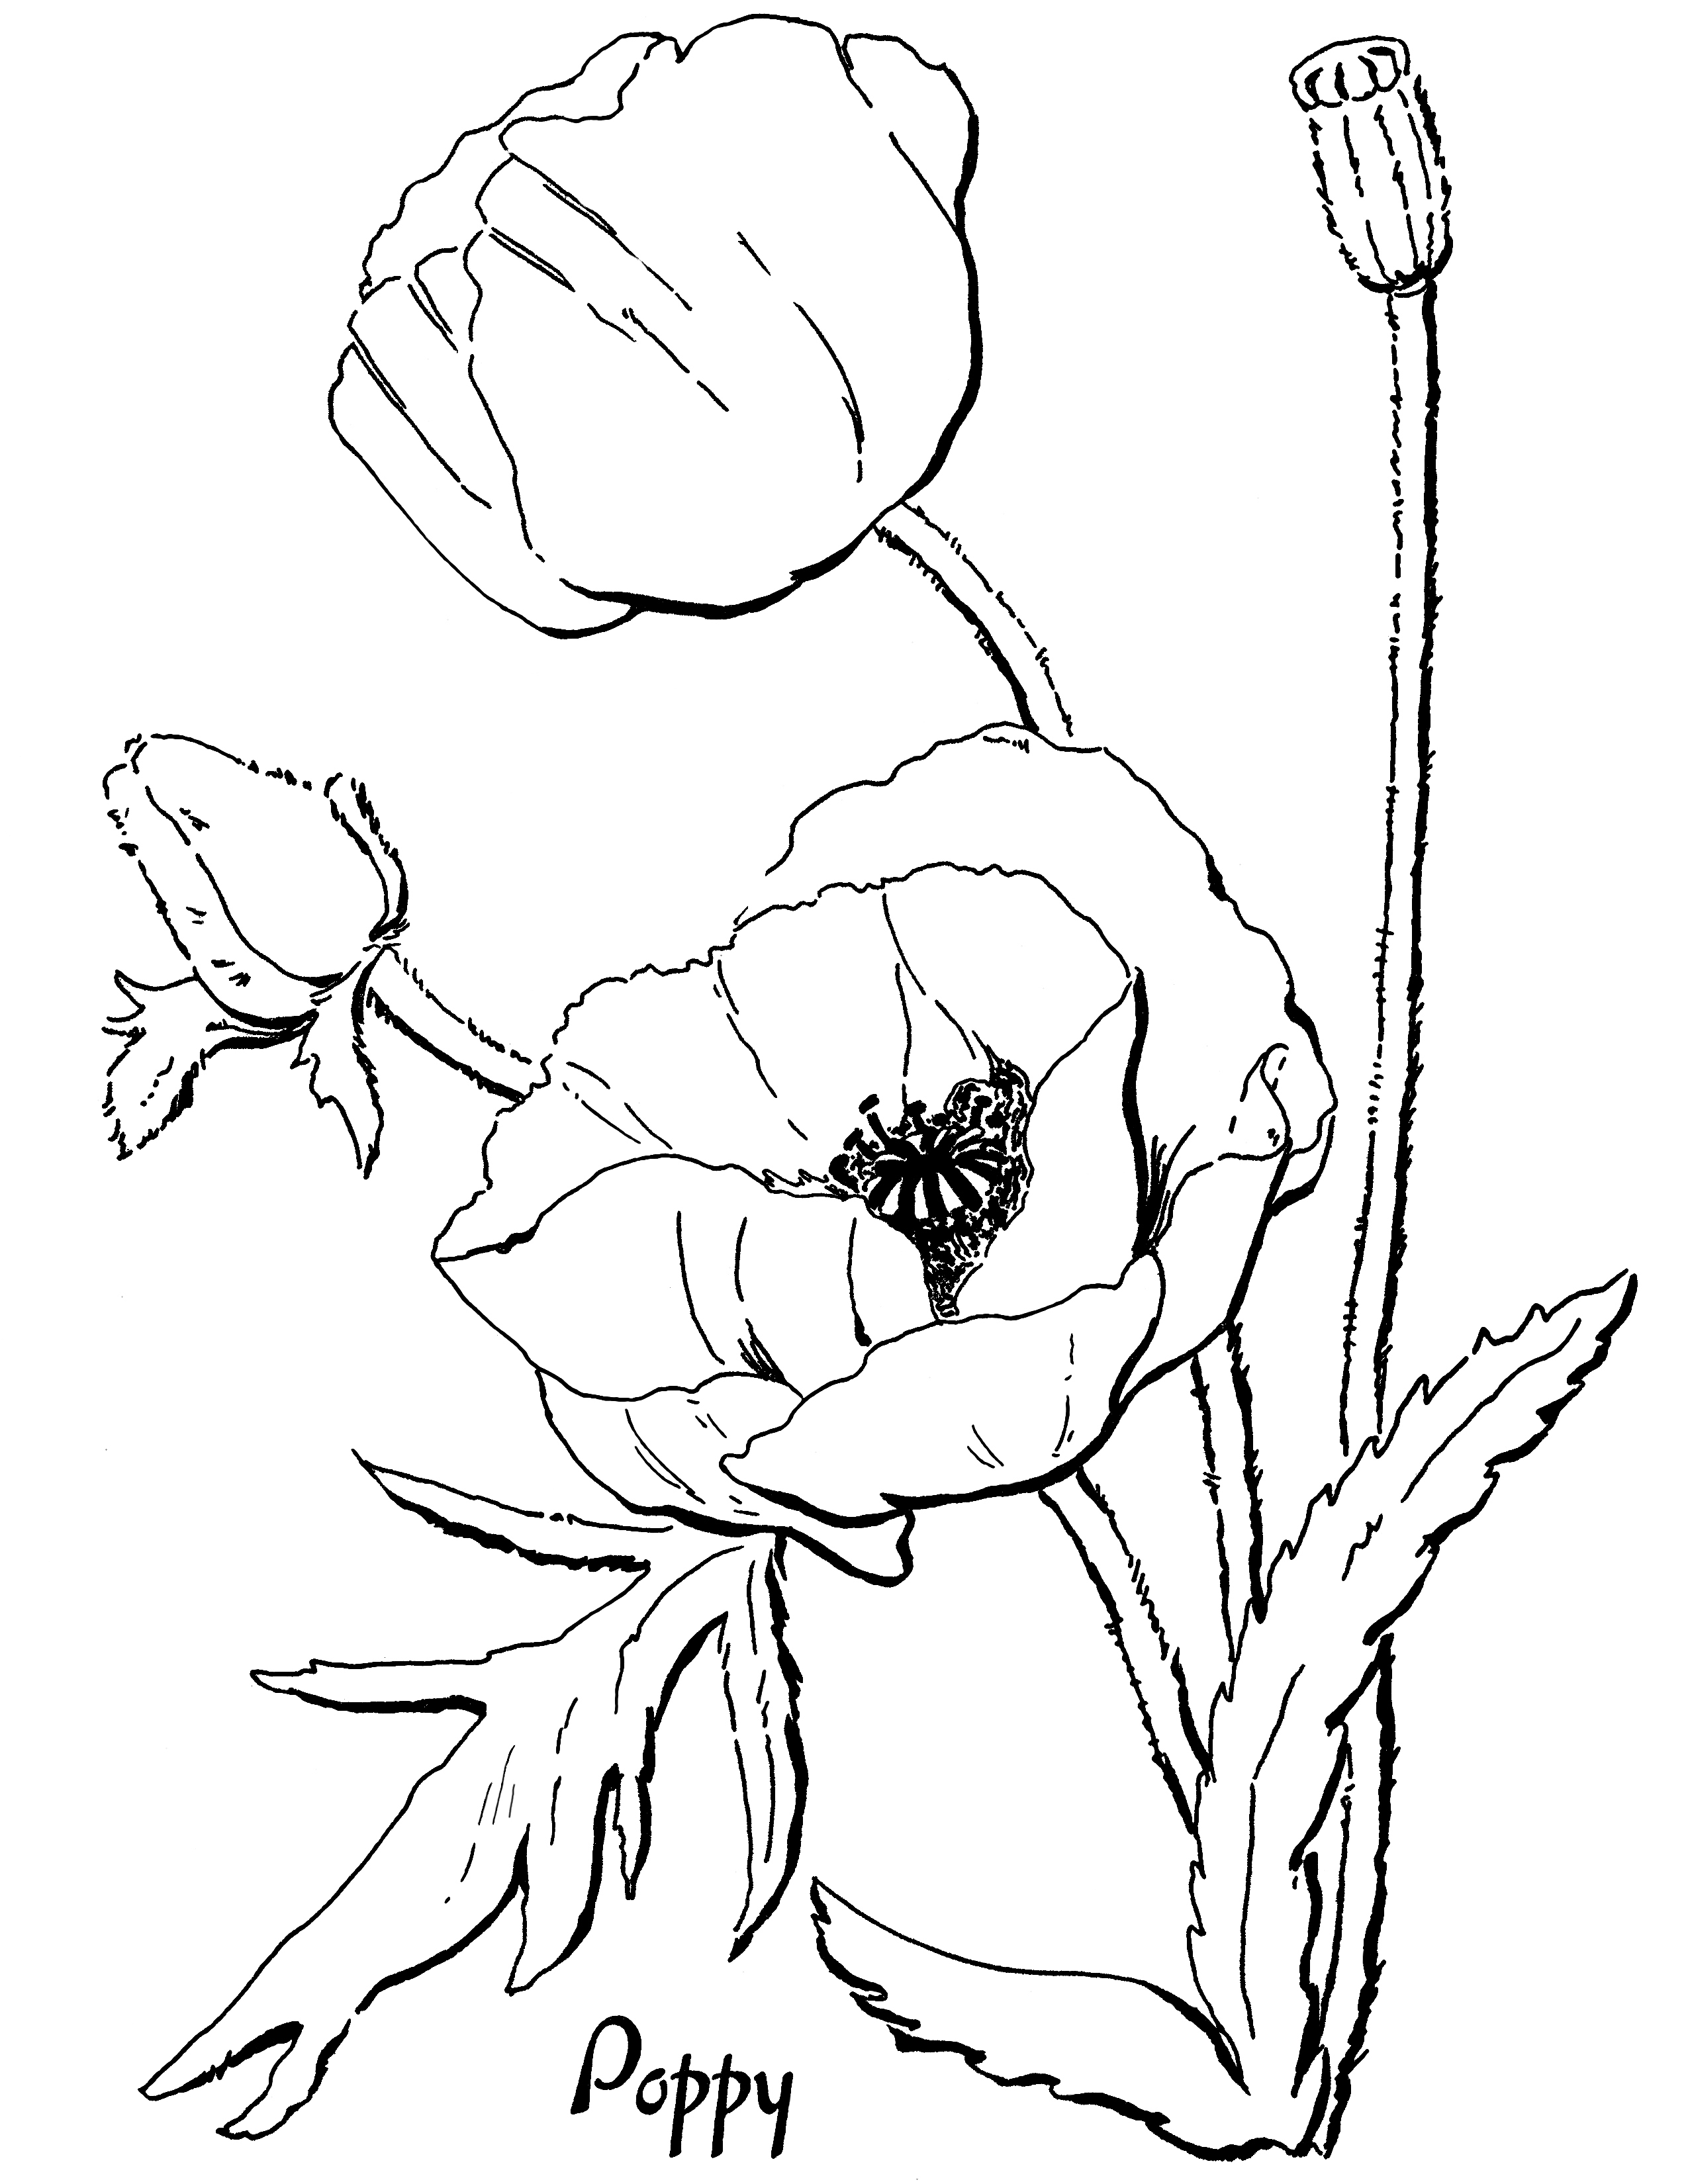 color poppy poppy coloring page for adults the graphics fairy poppy color